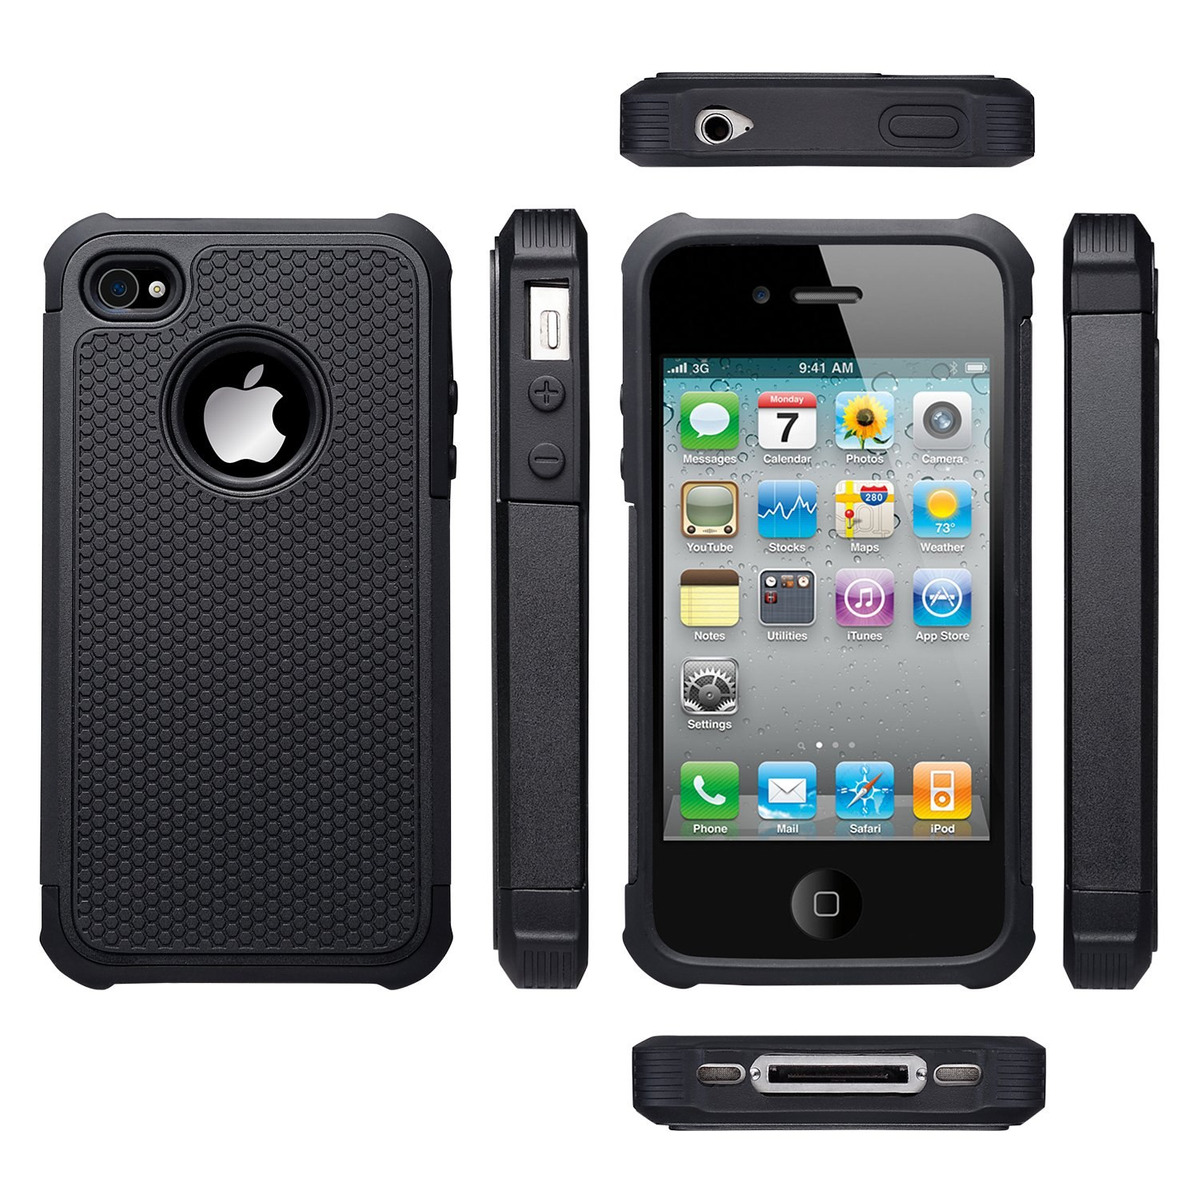 2fb9edfc162 uarmor funda para apple iphone 4 / iphone 4s, hybrid dual la. Cargando zoom.